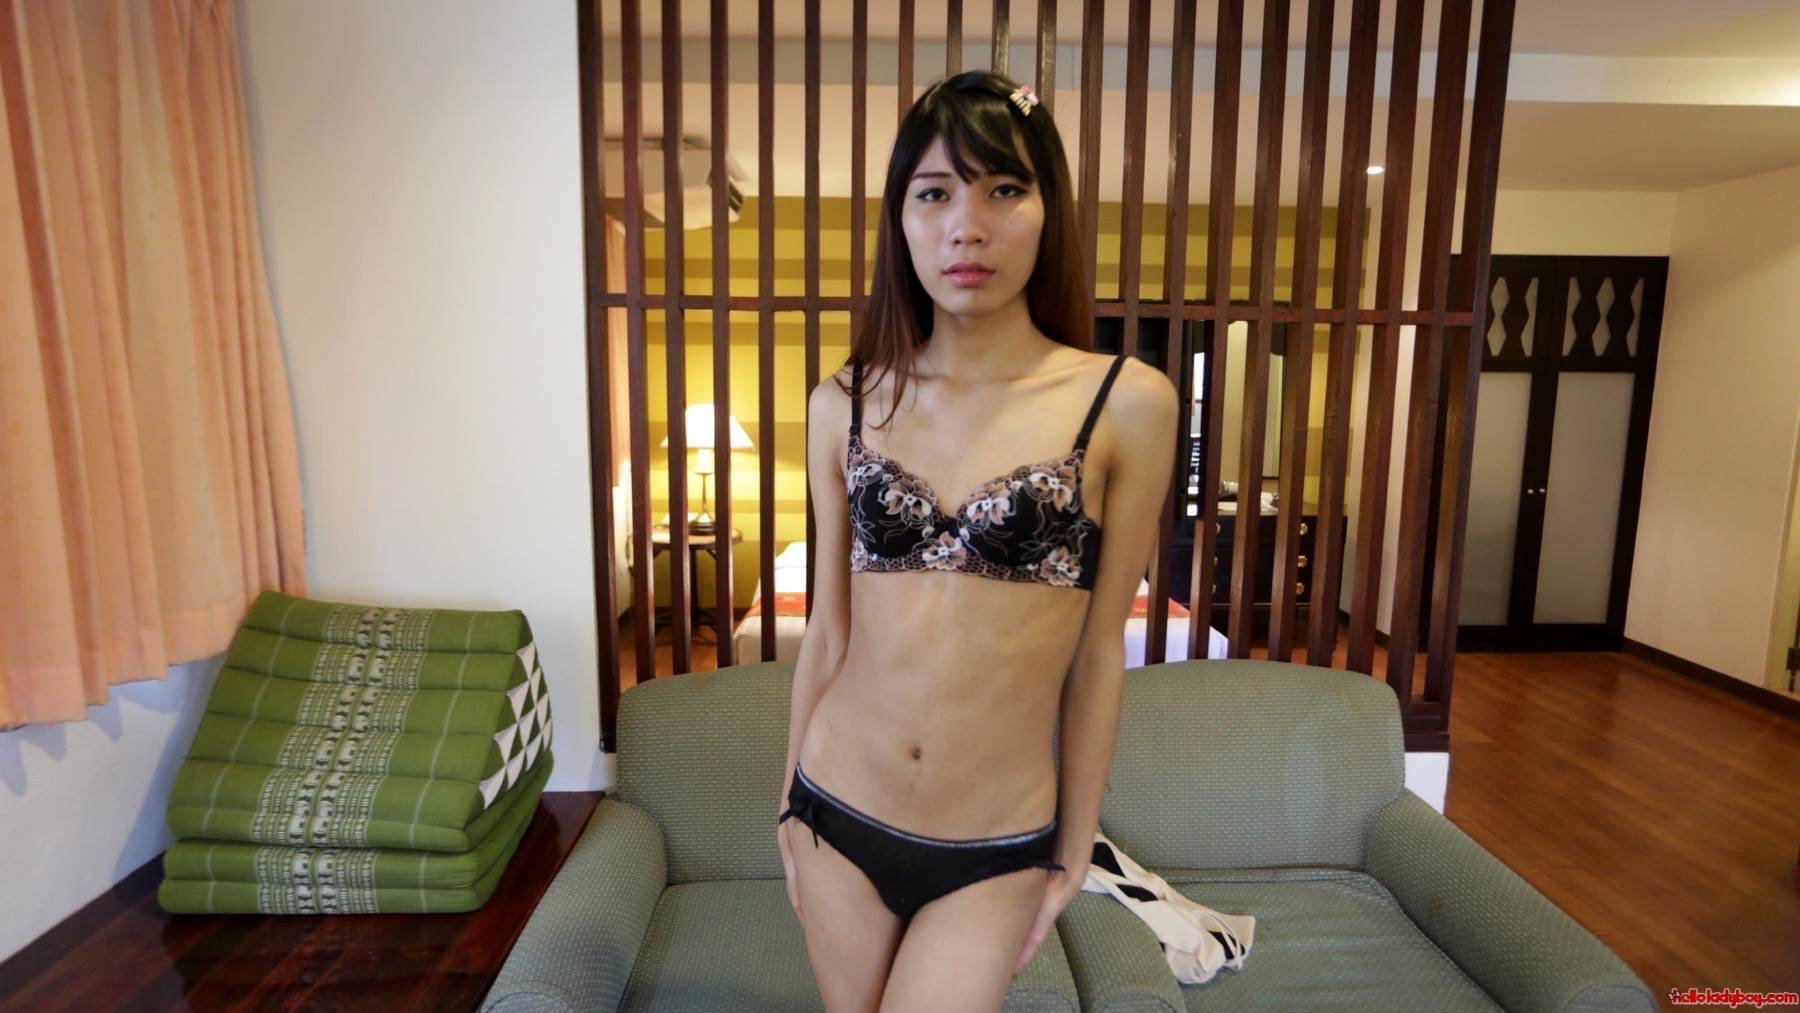 19 Year Old Beautiful And Naughty Asian Shemale Sucks Off White Dick